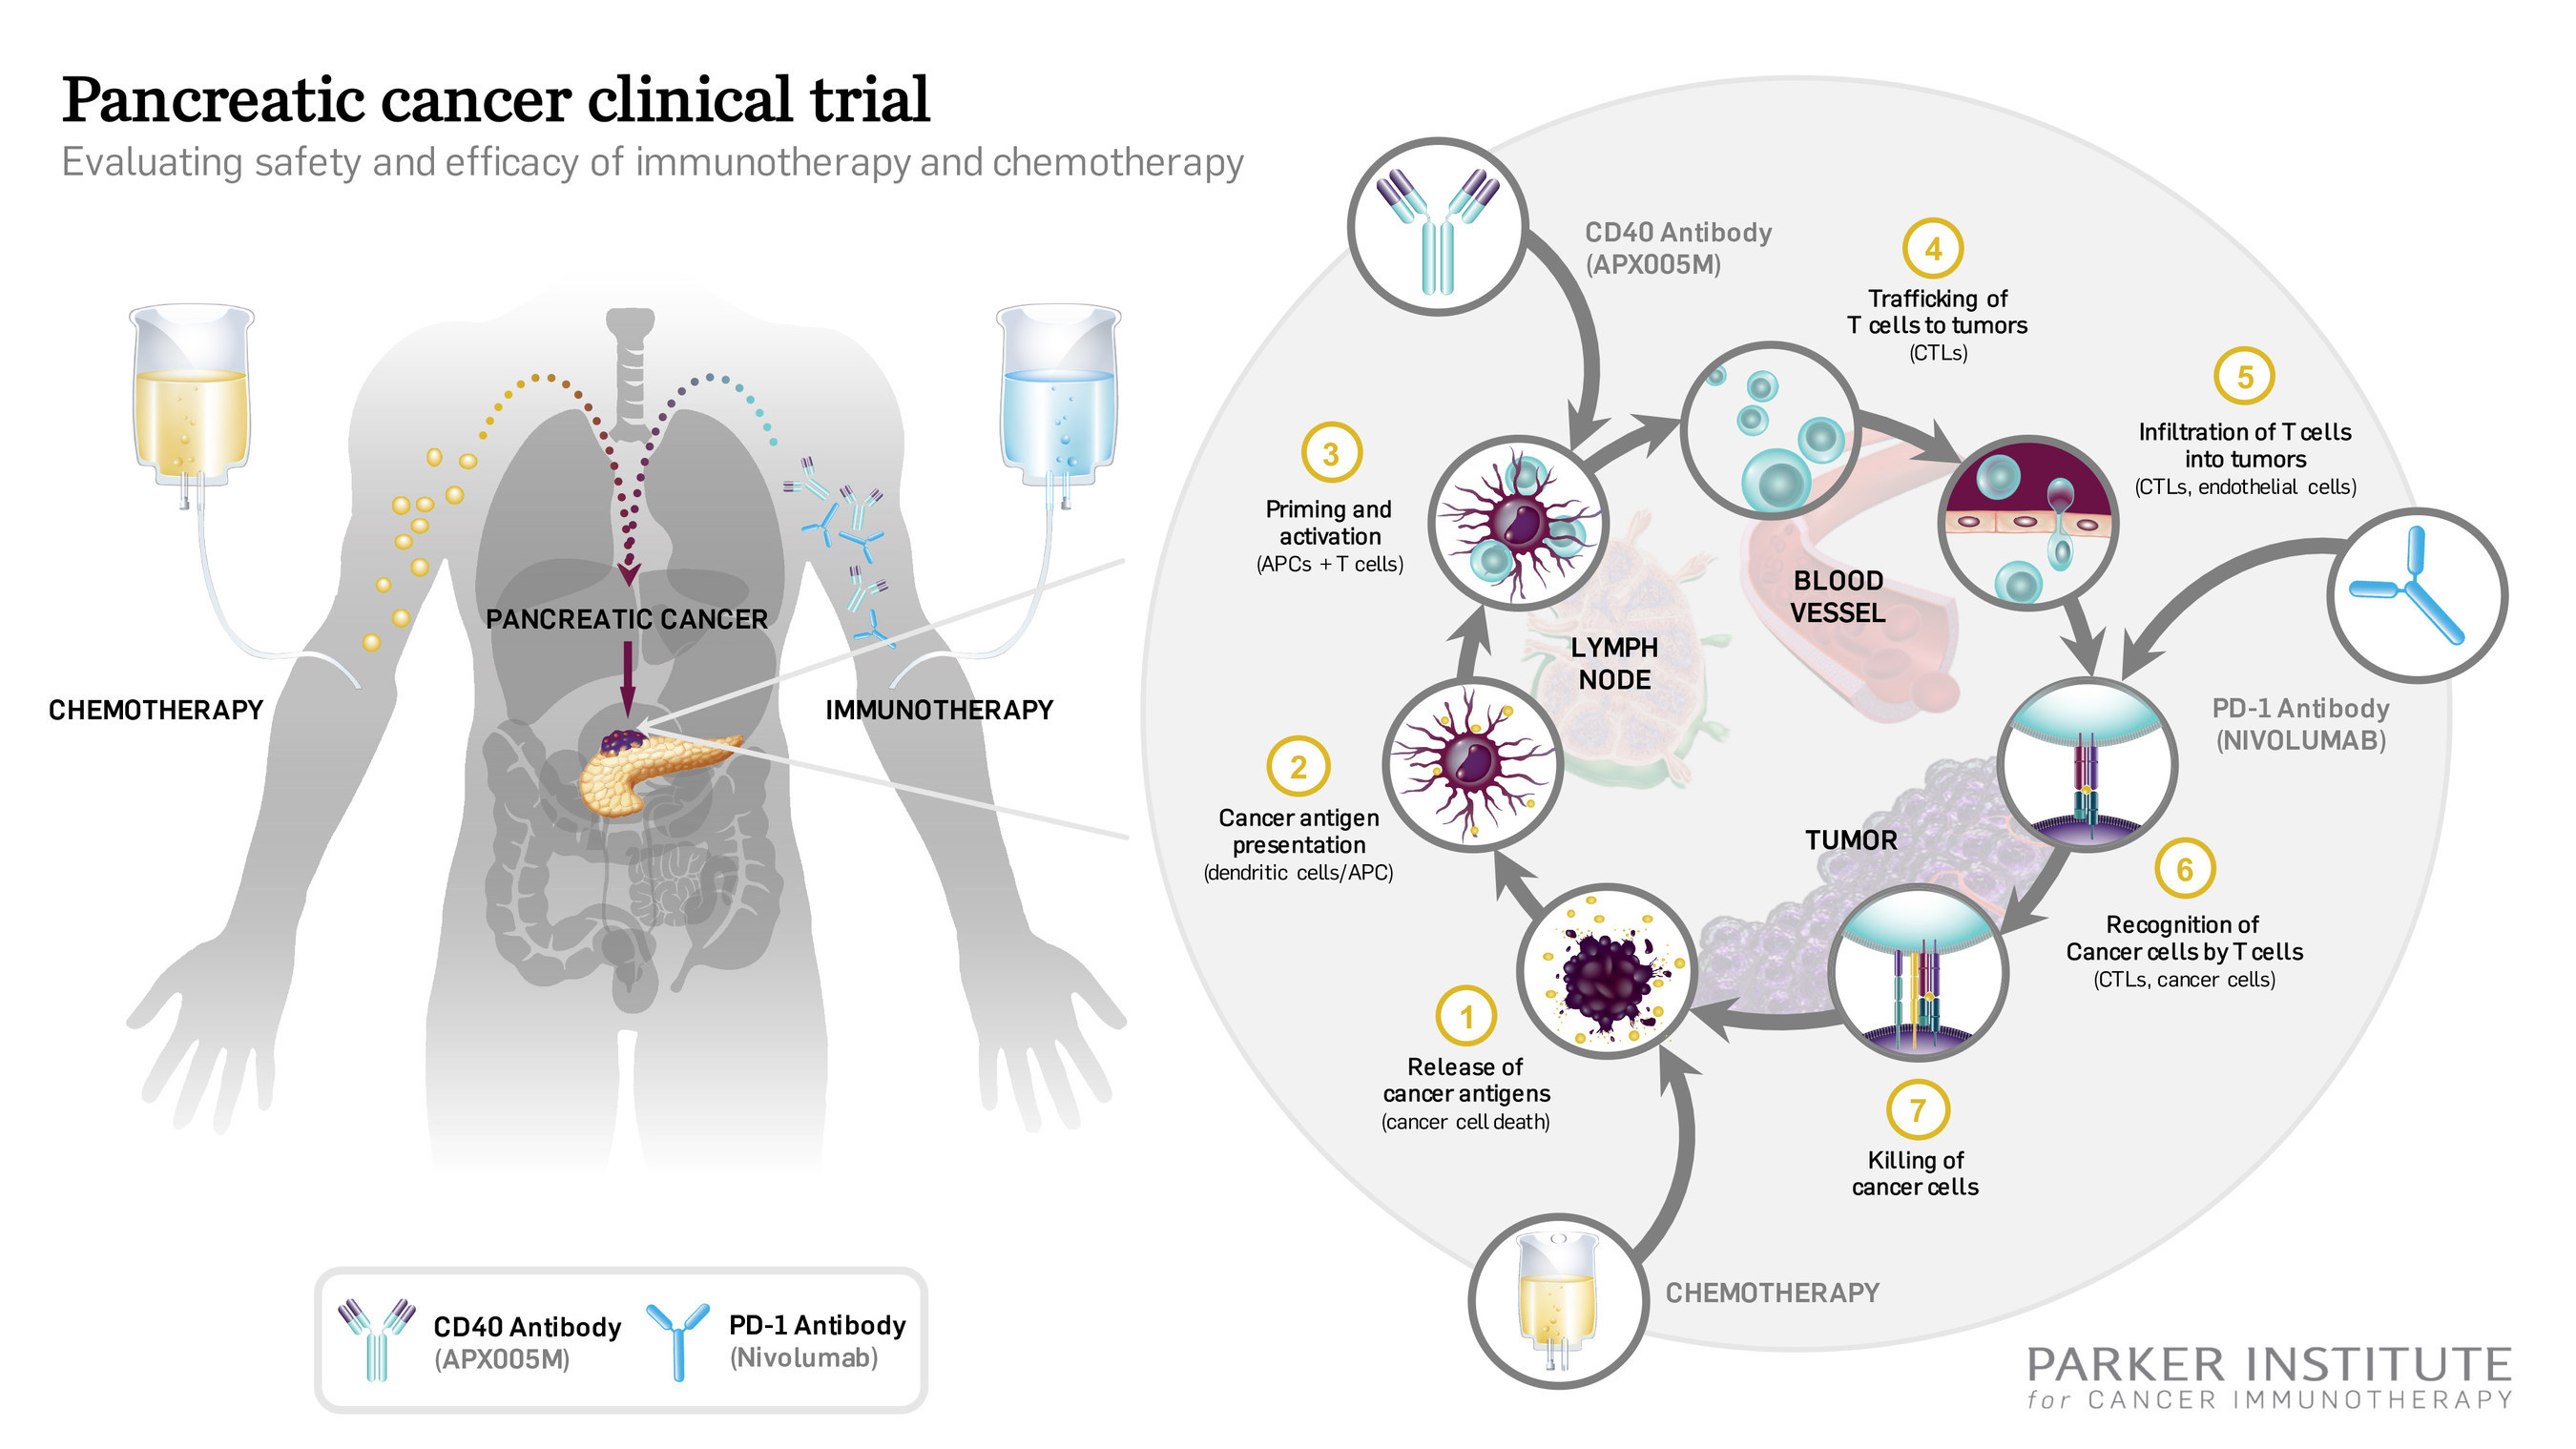 The first patients have begun treatment in a new pancreatic cancer clinical trial sponsored by the Parker Institute for Cancer Immunotherapy. The study explores the combination of standard of care chemotherapy and two immunotherapies, a PD-1 checkpoint inhibitor and a novel CD40 antibody. Cancer immunotherapy utilizes the immune system to tackle tumors.